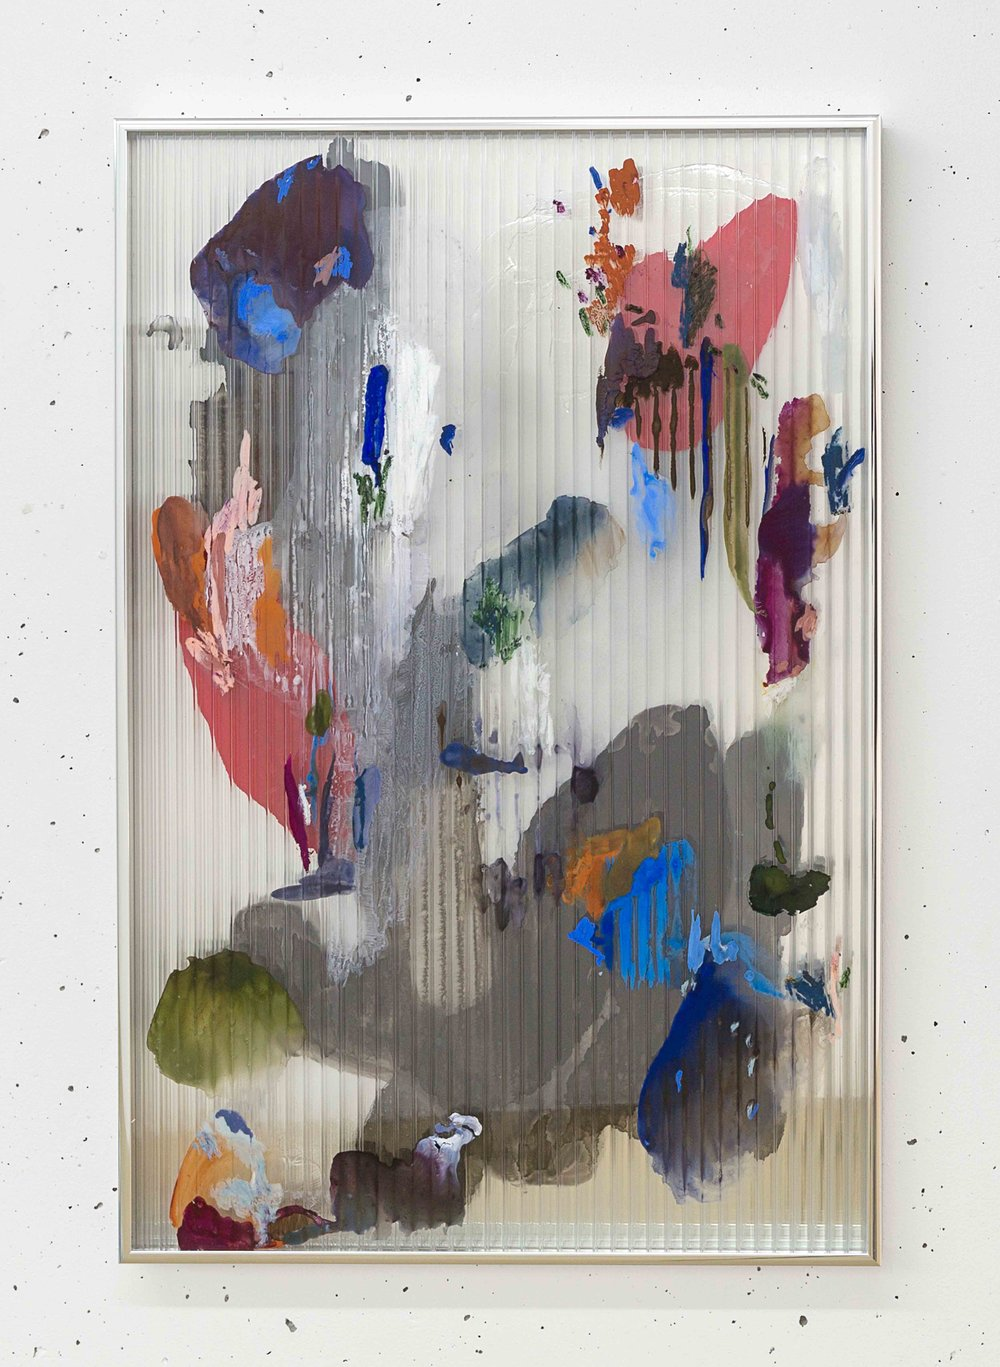 Chaos 2 , 2017 gouache, ink, acrylic, oil, mastic on polycarbonate, mirror, aluminium frame 67 x 44,5 x 2,5 cm  photo © Romain Darnaud